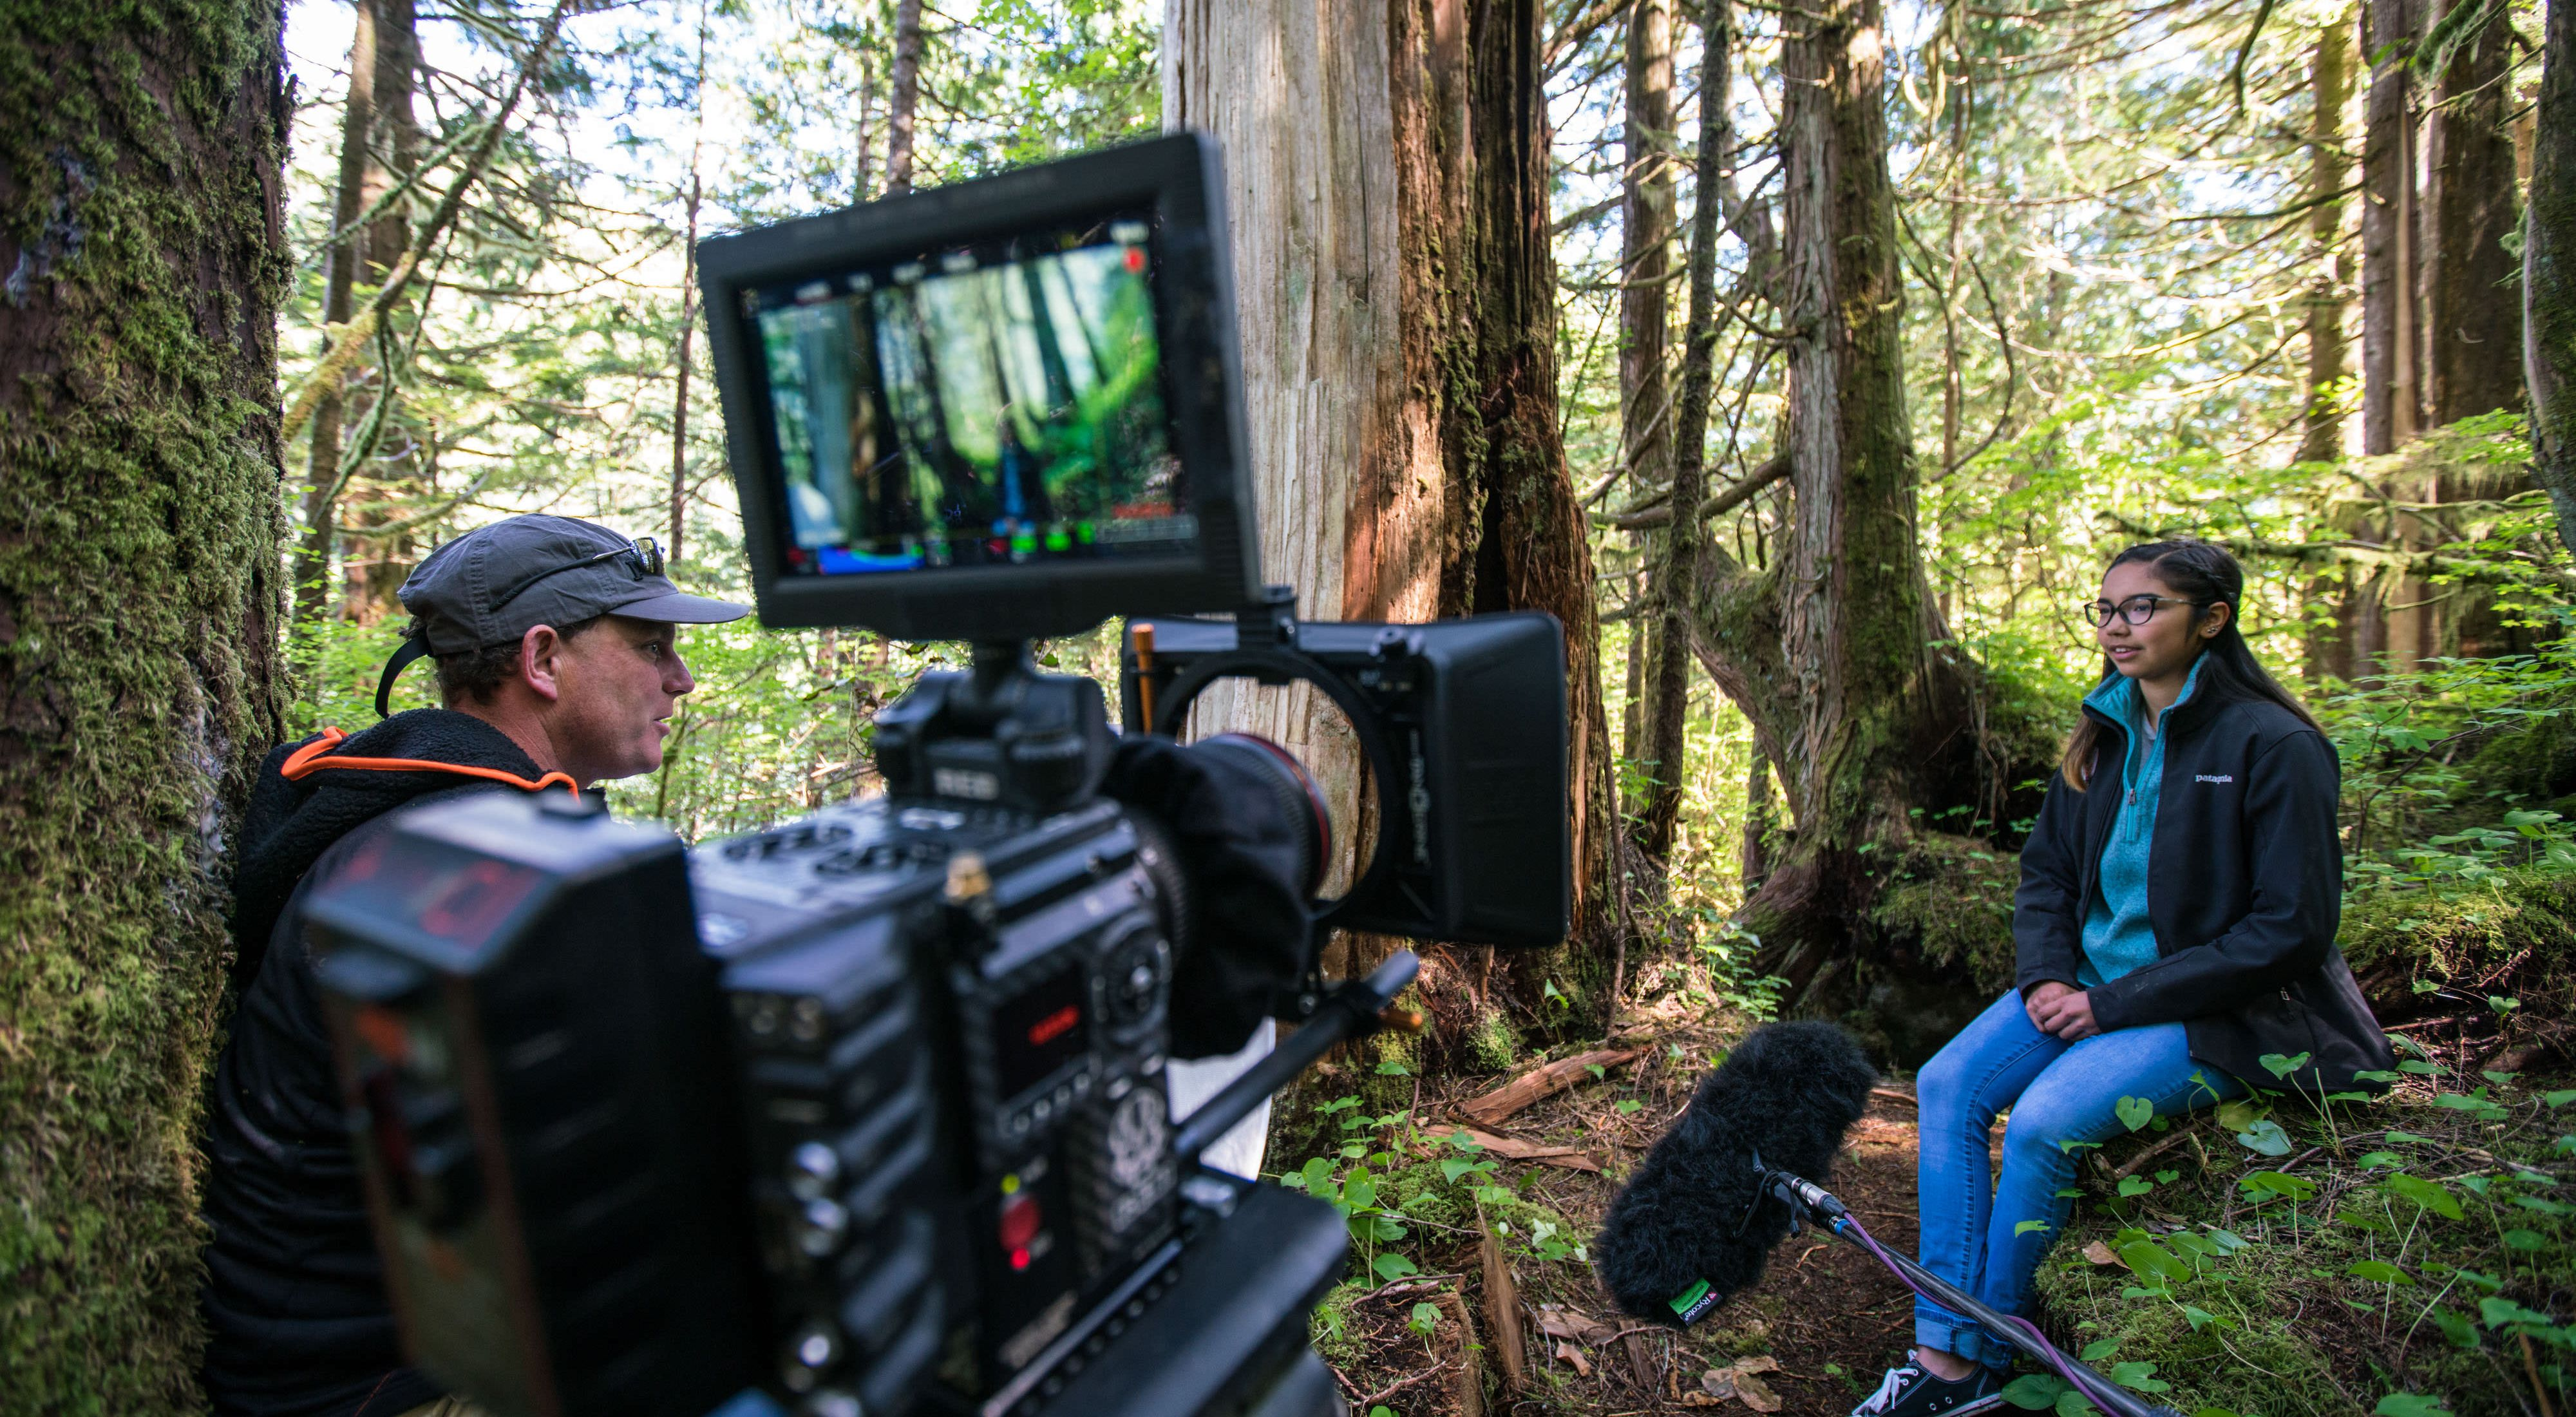 Mercedes Robinson-Neasloss was interviewed for a film about the Great Bear Rainforest, where her people have stewarded the land and water for thousands of years.